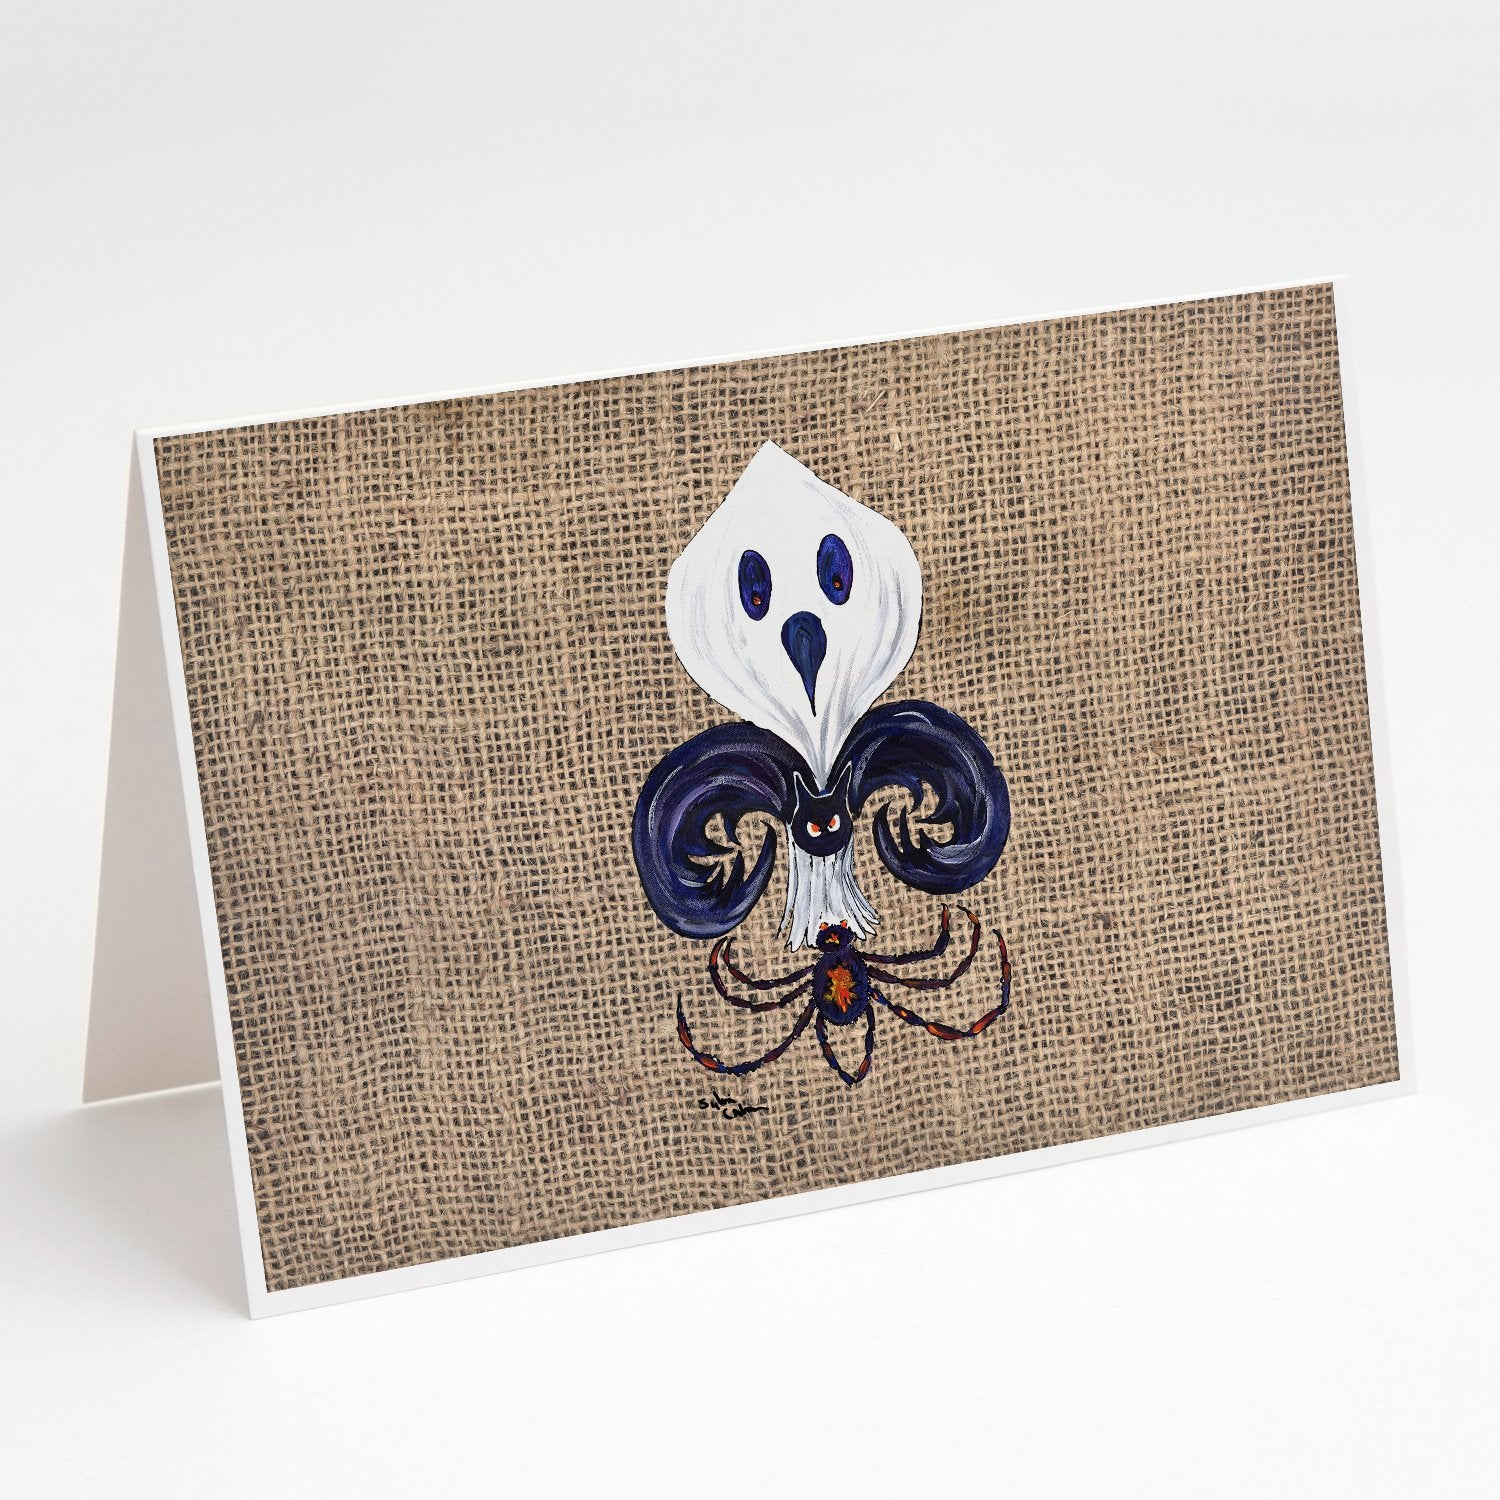 Buy this Halloween Ghost Bat and Spider Fleur de lis on Faux Burlap Greeting Cards and Envelopes Pack of 8